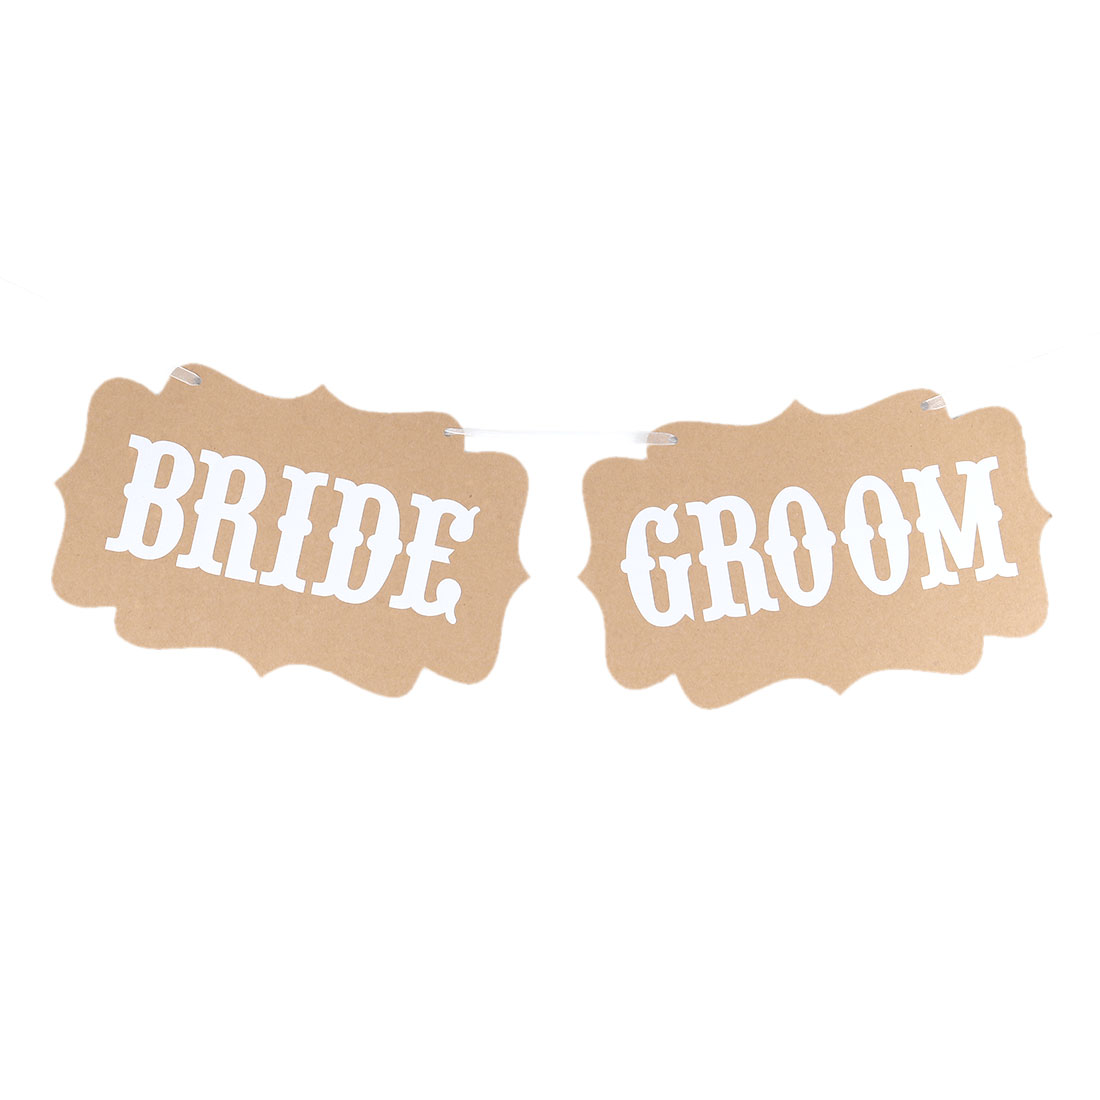 BRIDE GROOM Letter Pattern Chair Back Wall Hanger Party Decor Photo Prop Banner